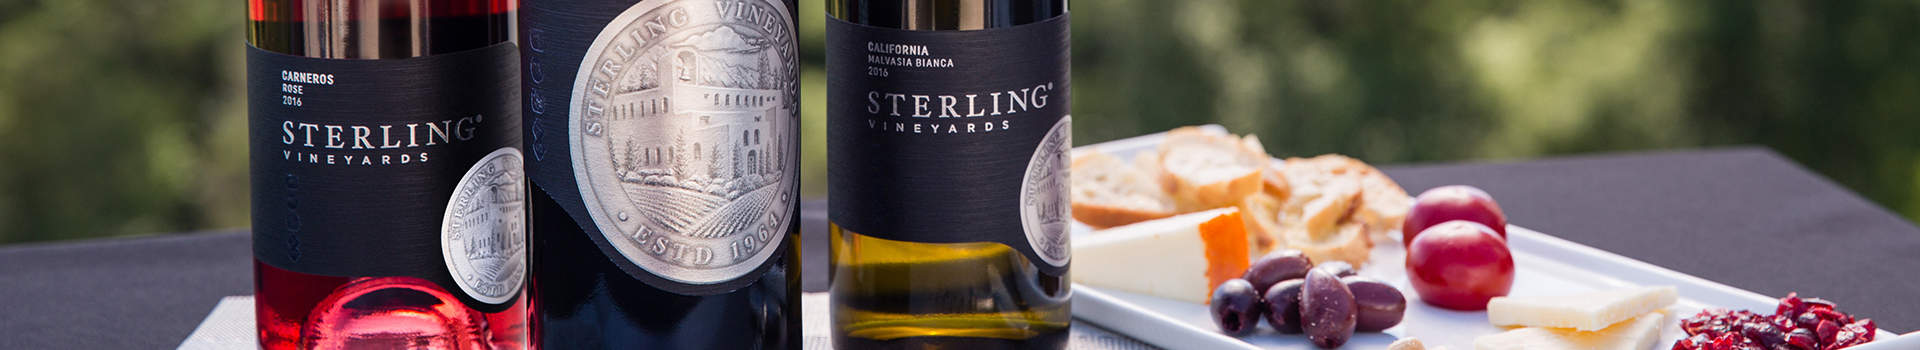 Sterling Malvasia Bianca and Rosé